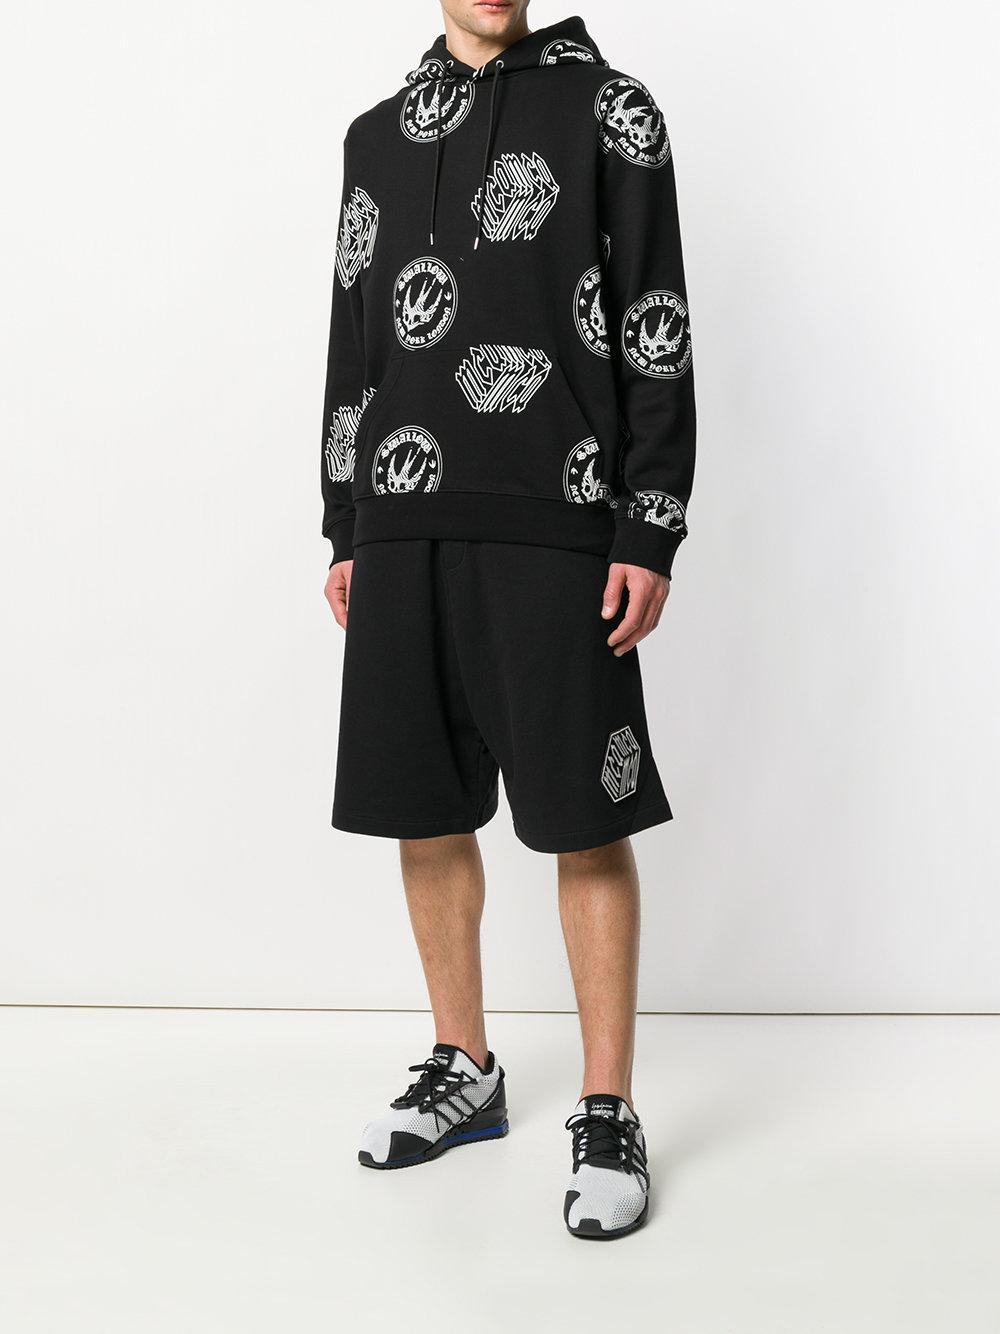 McQ Cotton Logo Patch Track Shorts in Black for Men